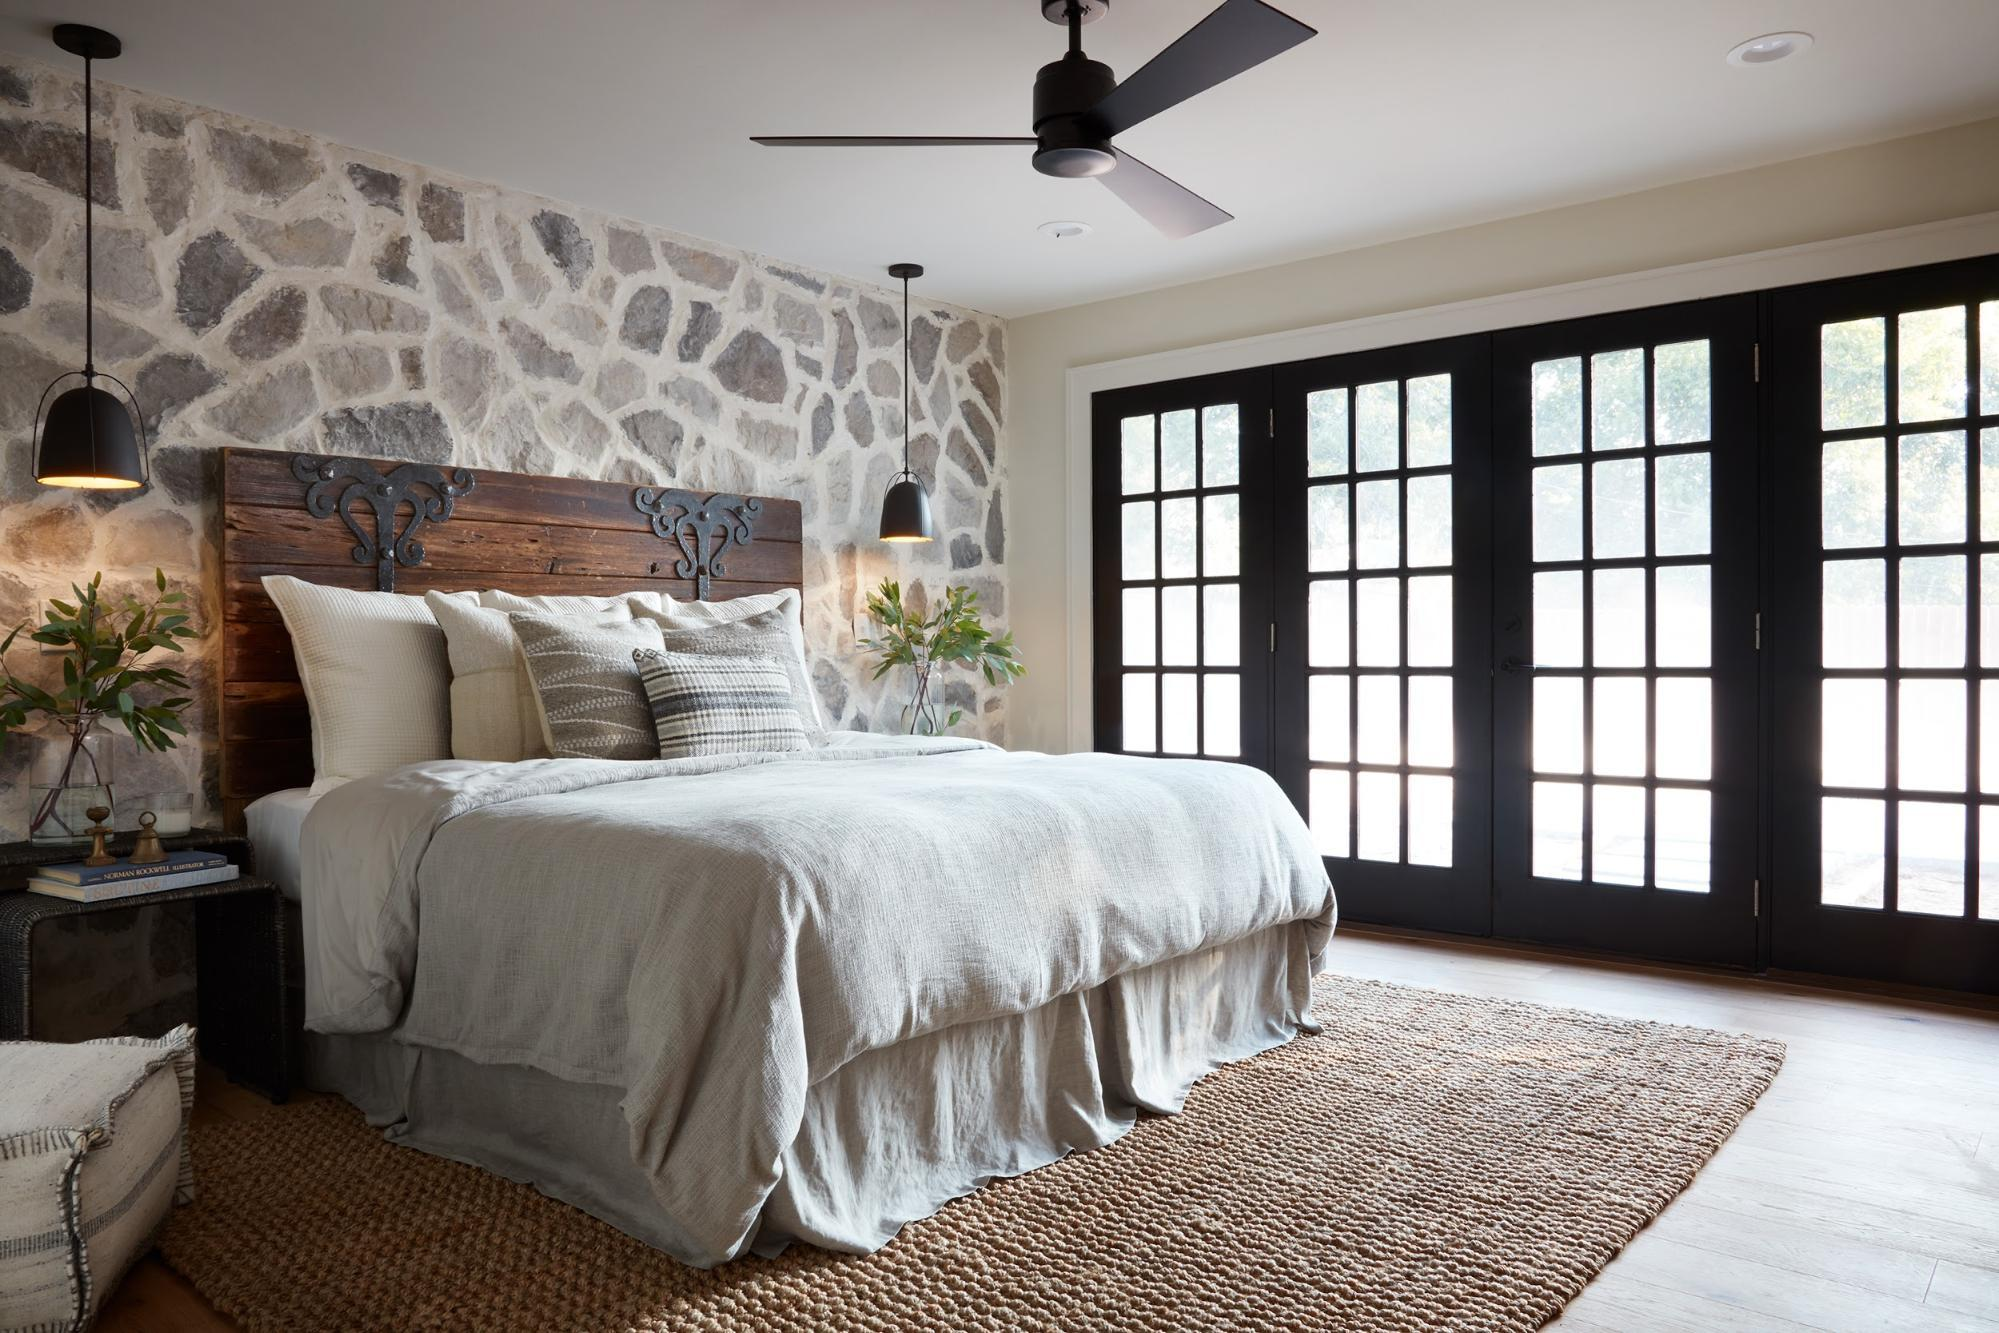 joanna gaines best advice for designing a relaxing master bedroom retreat - Joanna Gaines Bedroom